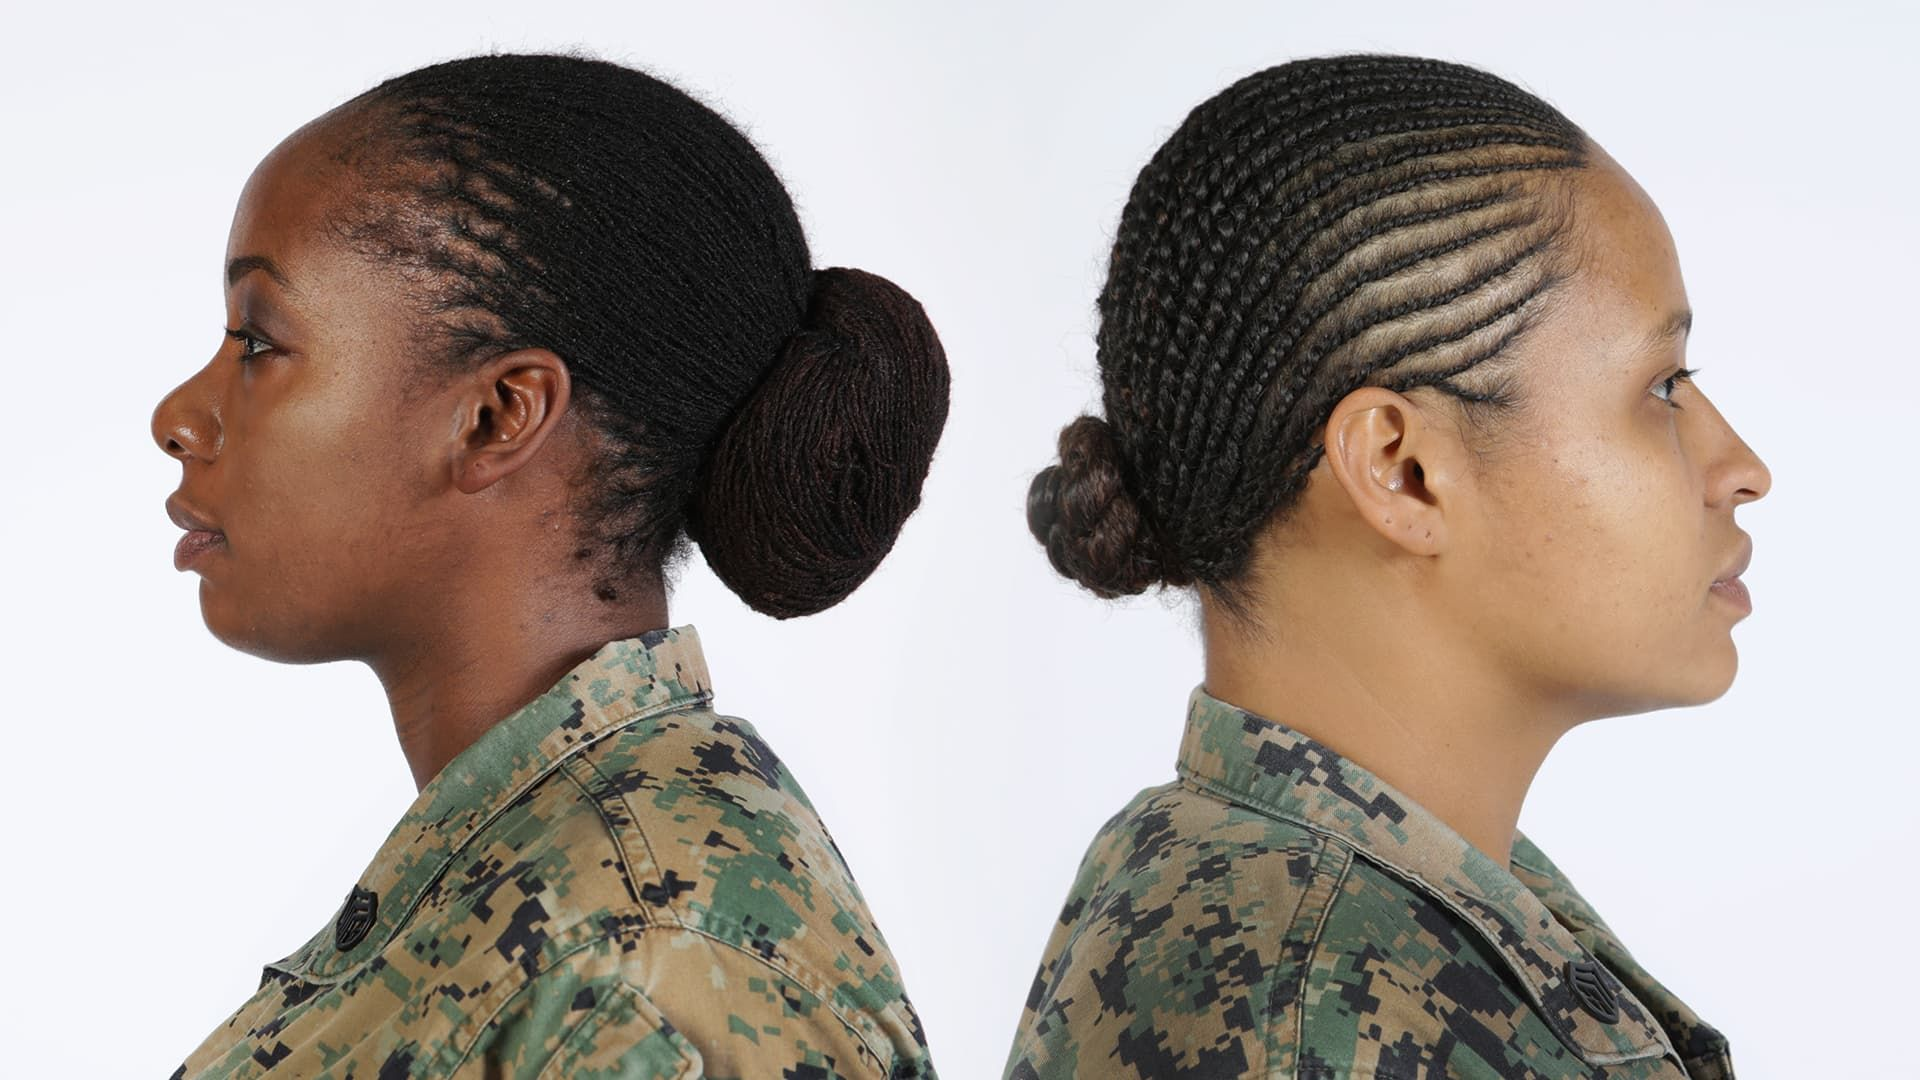 Hairstyles For Women Military Hairstyles Military Hair Womens Hairstyles Twist Hairstyles